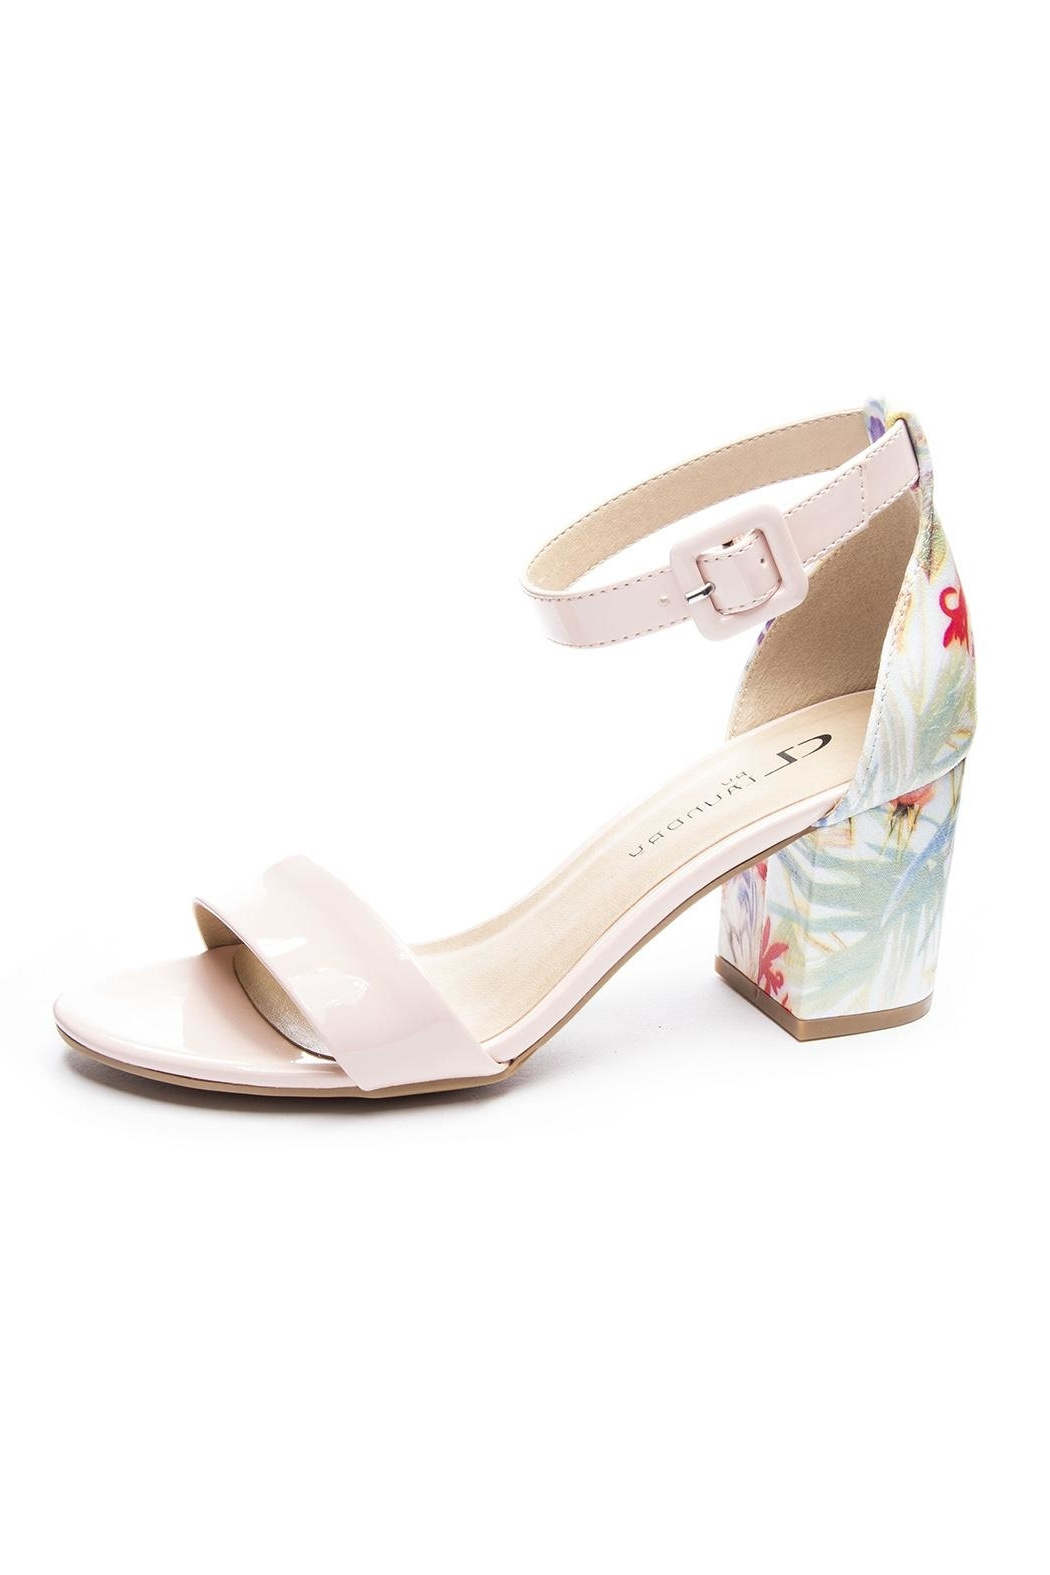 Chinese Laundry Soft Floral Heels - Main Image